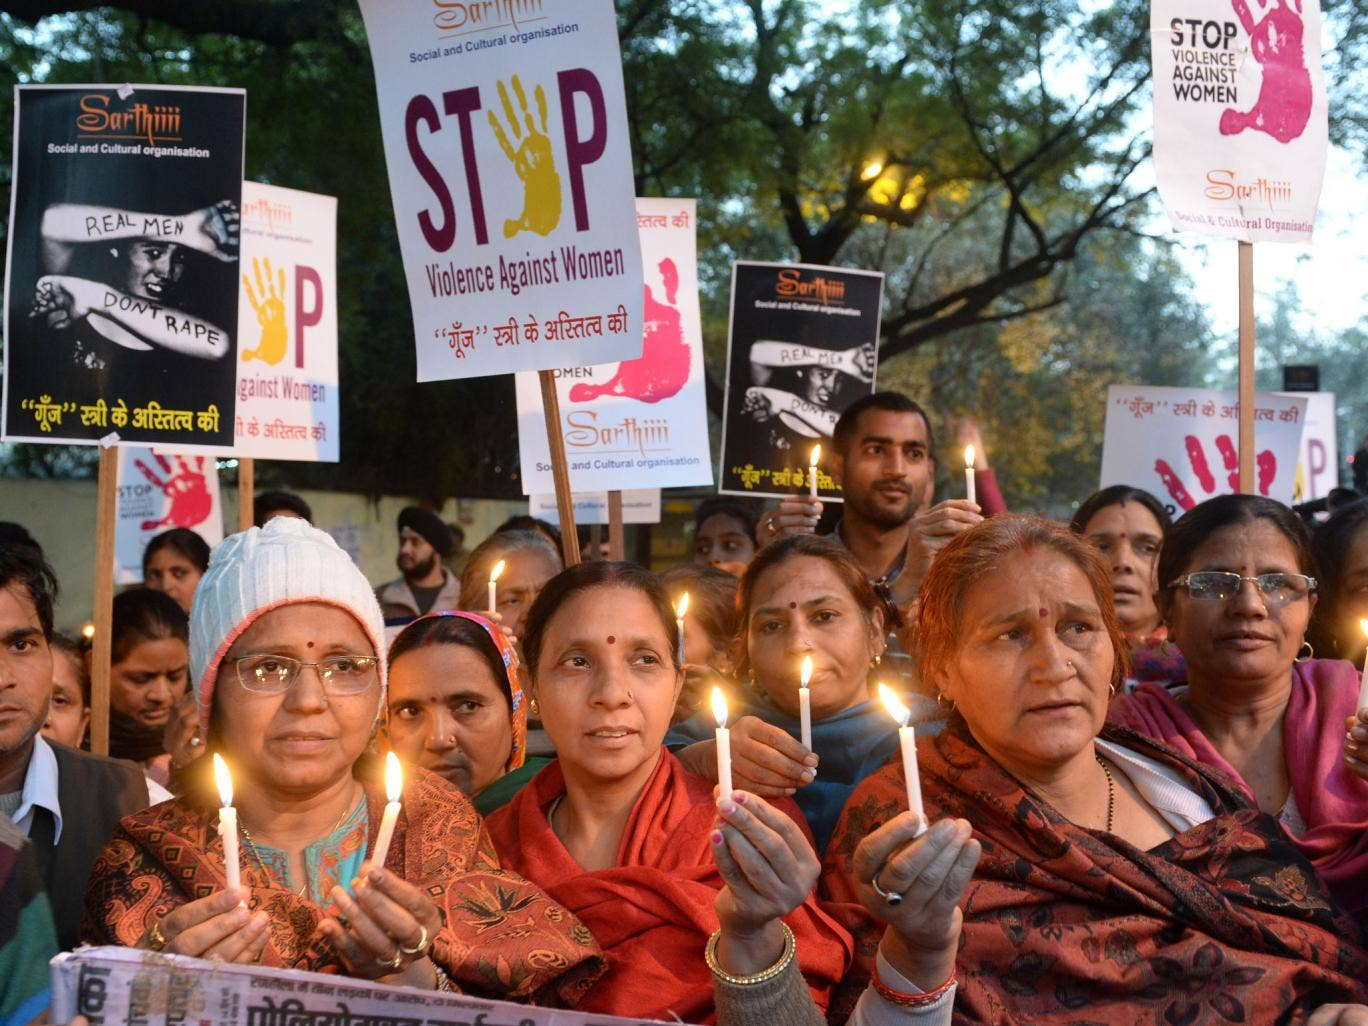 Official figures for the number of women raped in India are often disputed by Women's Rights experts who claim the numbers are far higher